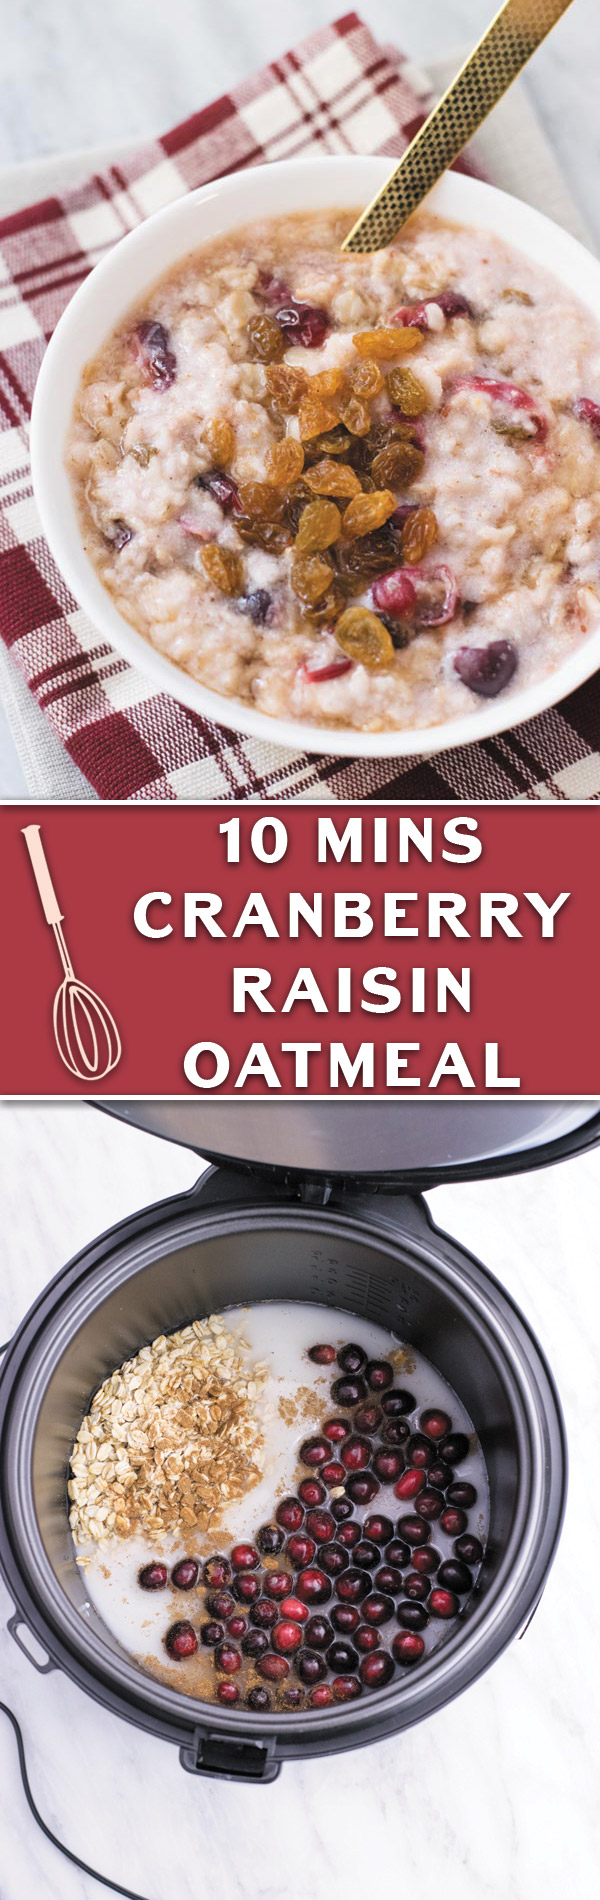 Cranberry Raisin Oatmeal - Just 10 mins, throw everything in pot or rice cooker and you got yourself a hot piping bowl of fall goodness! Cranberries, raisins and then topped with maple syrup!